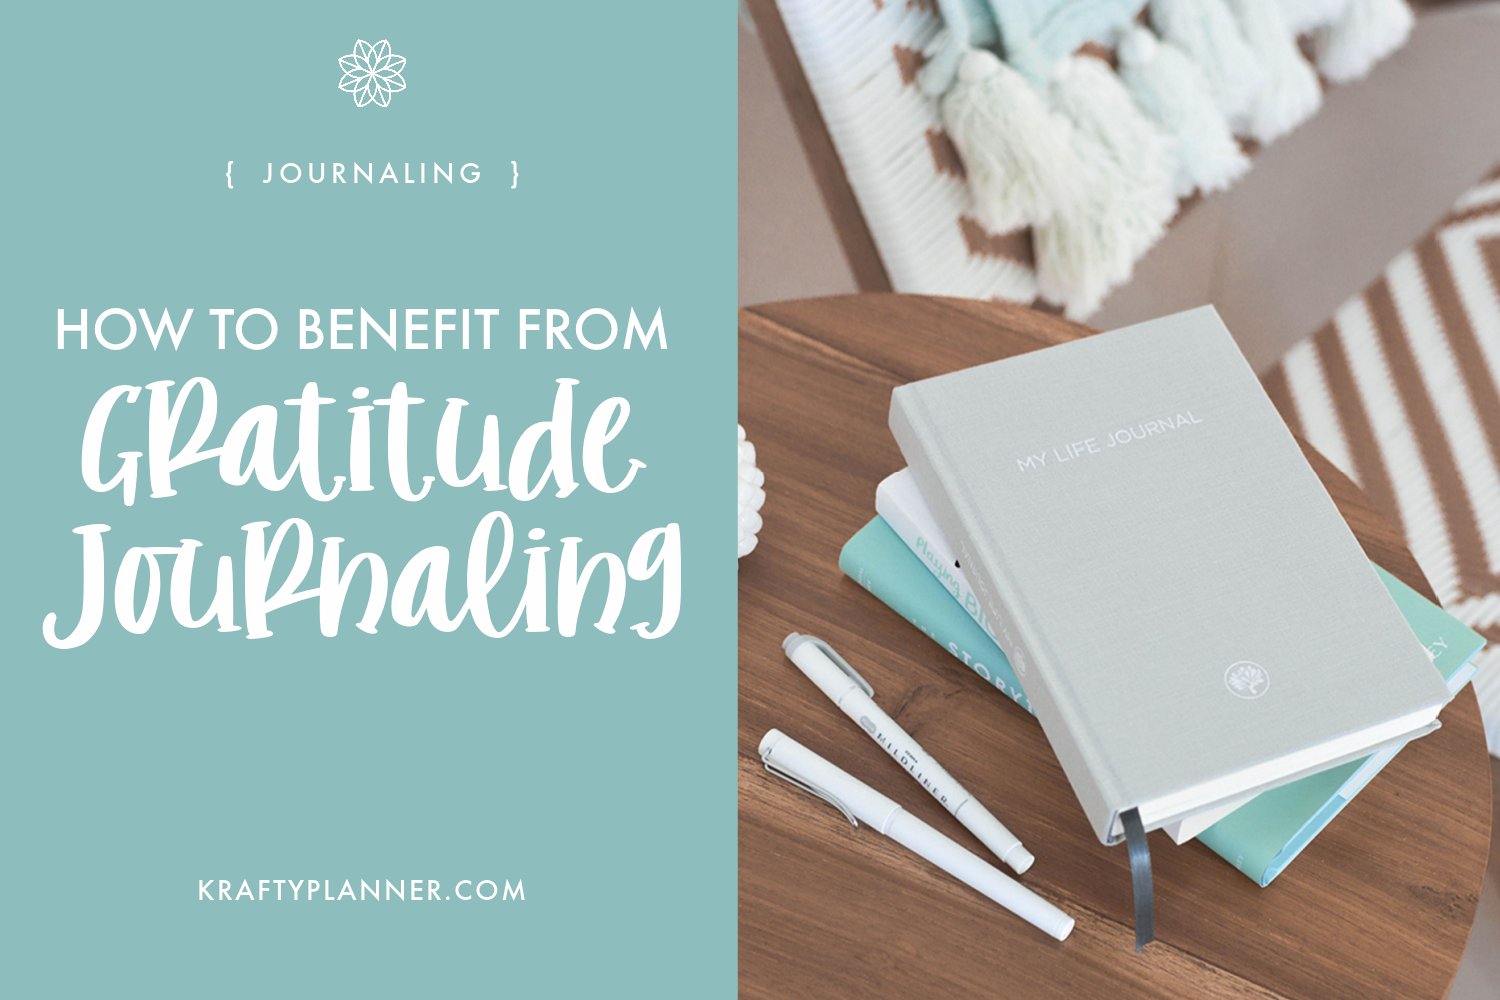 How to Benefit From Gratitude Journaling